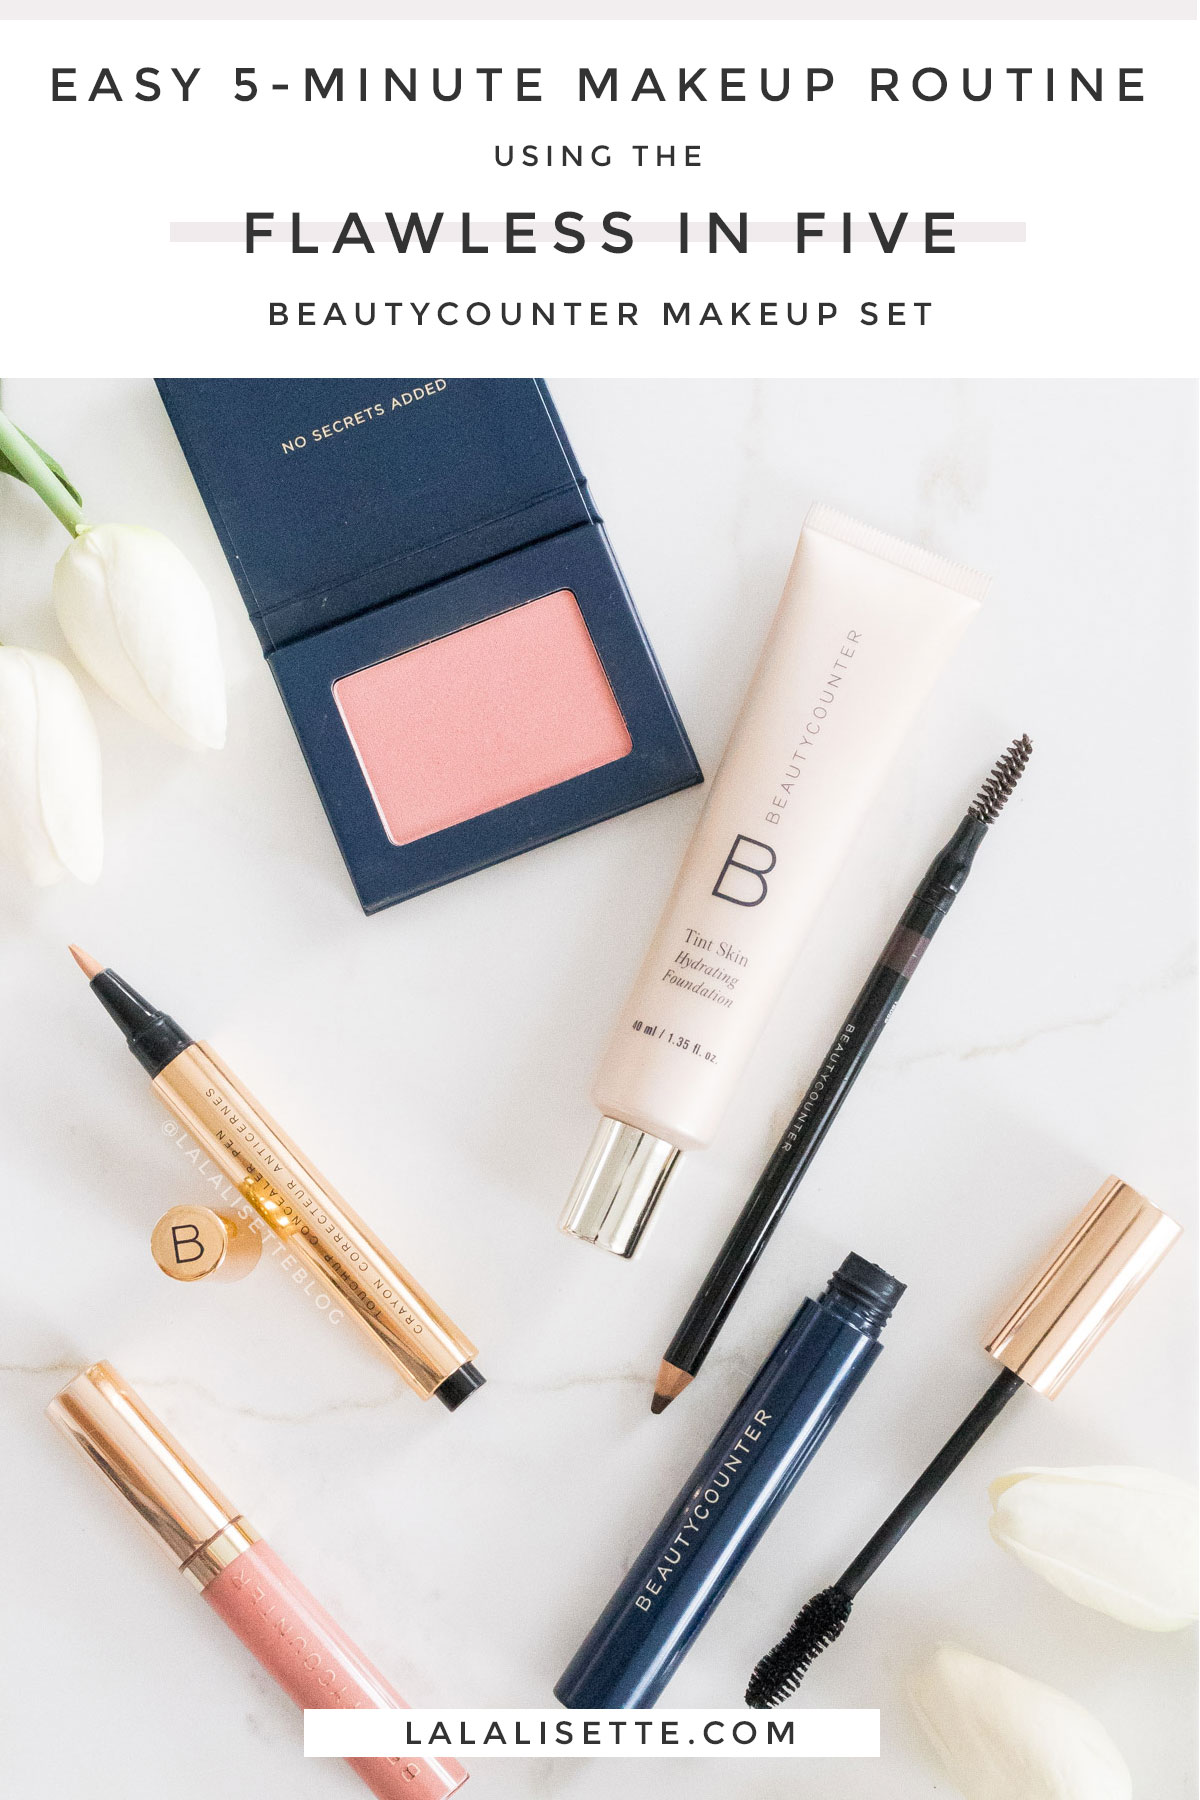 Beautycounter Flawless in Five makeup with text above – Easy 5-Minute Makeup Routine Using the Flawless in Five Beautycounter Makeup Set